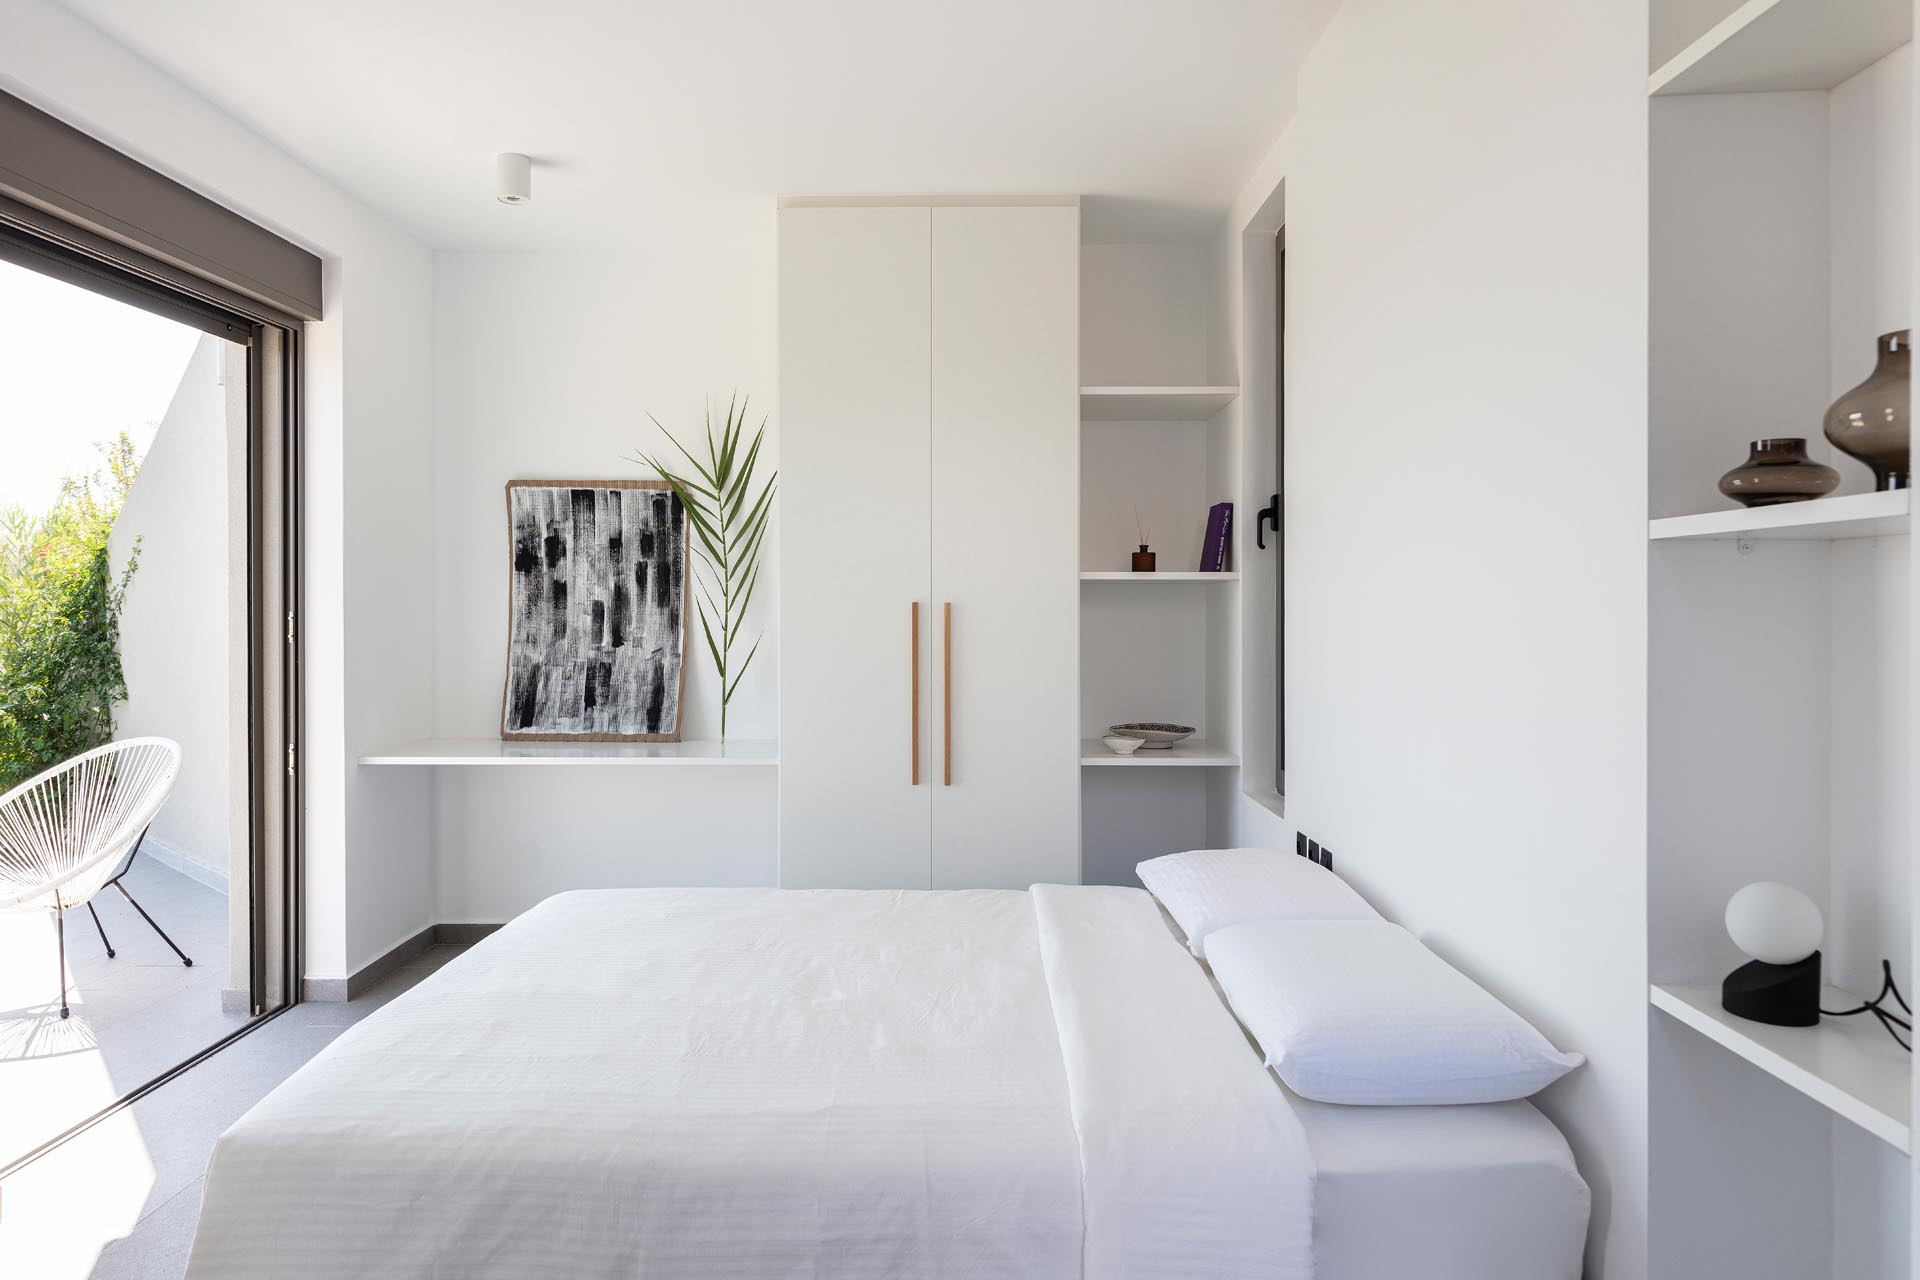 A modern white bedroom with built-in shelves and closets.